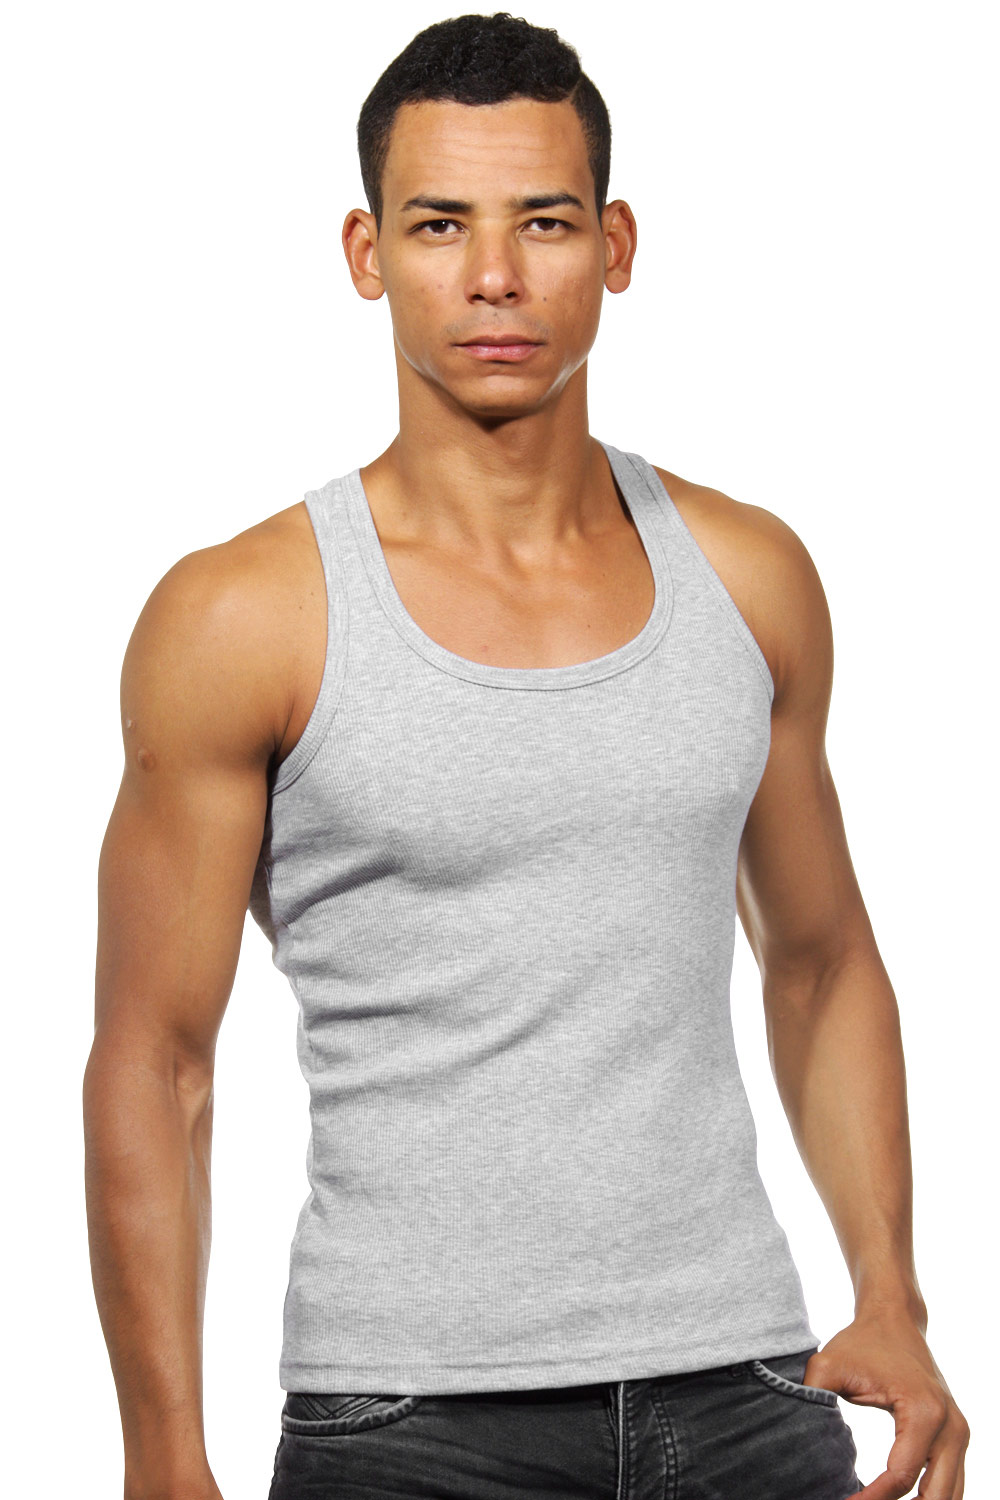 DARKZONE Ripp-Athletikshirt slim fit auf oboy.de